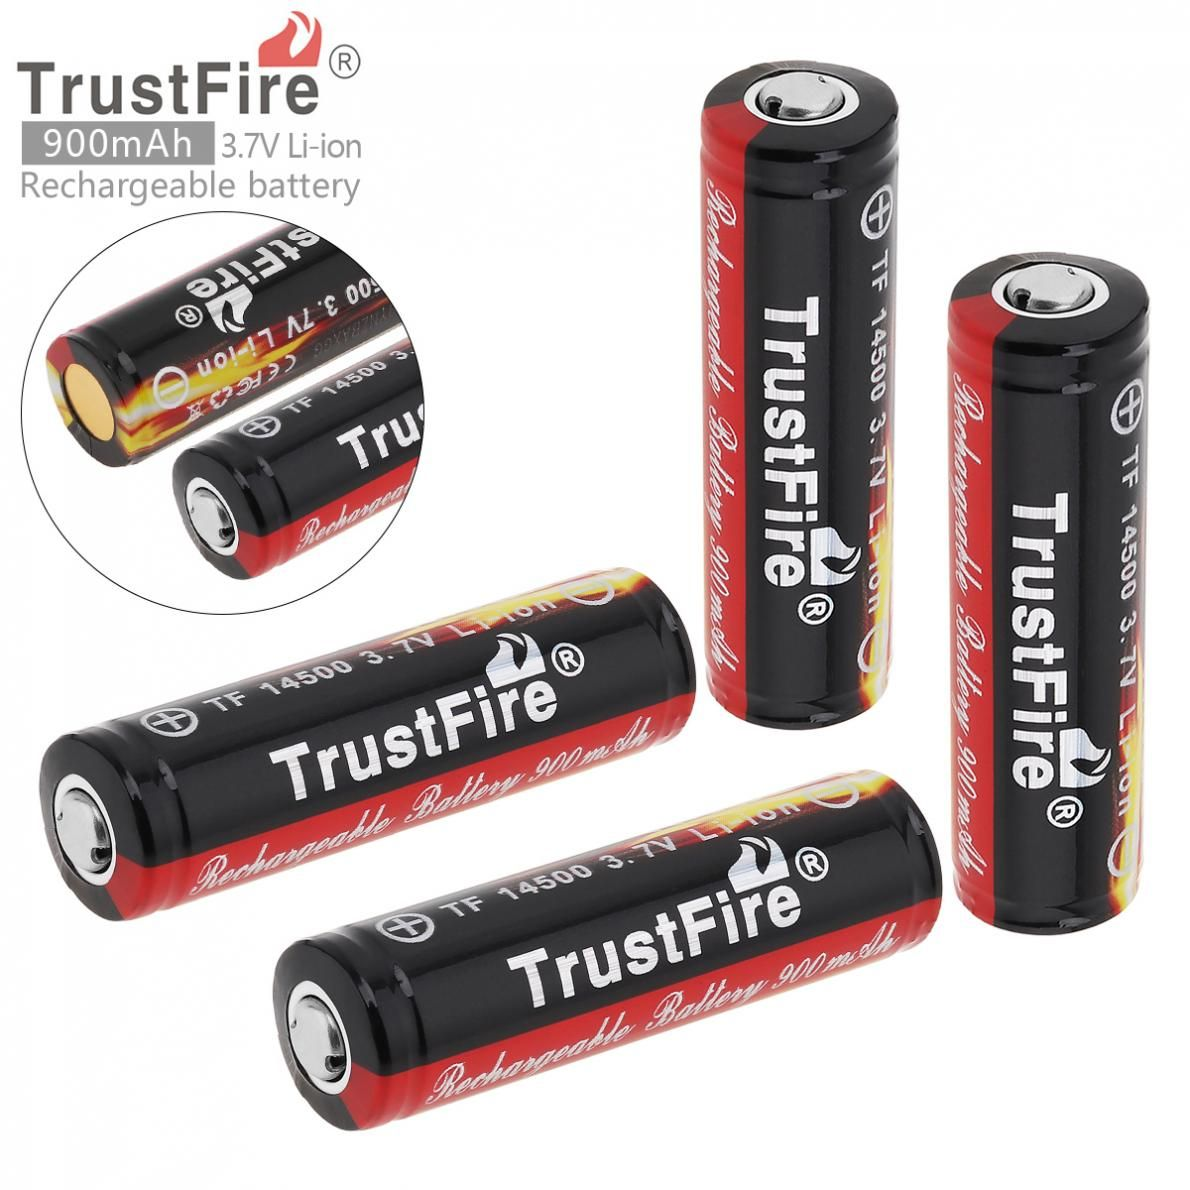 4 PiecesTrstFire 14500 Battery 3.7V ICR14500 900Mah Li-ion 14500 Rechargeable Battery Batteries Bateria For LED <font><b>Flashlight</b></font>